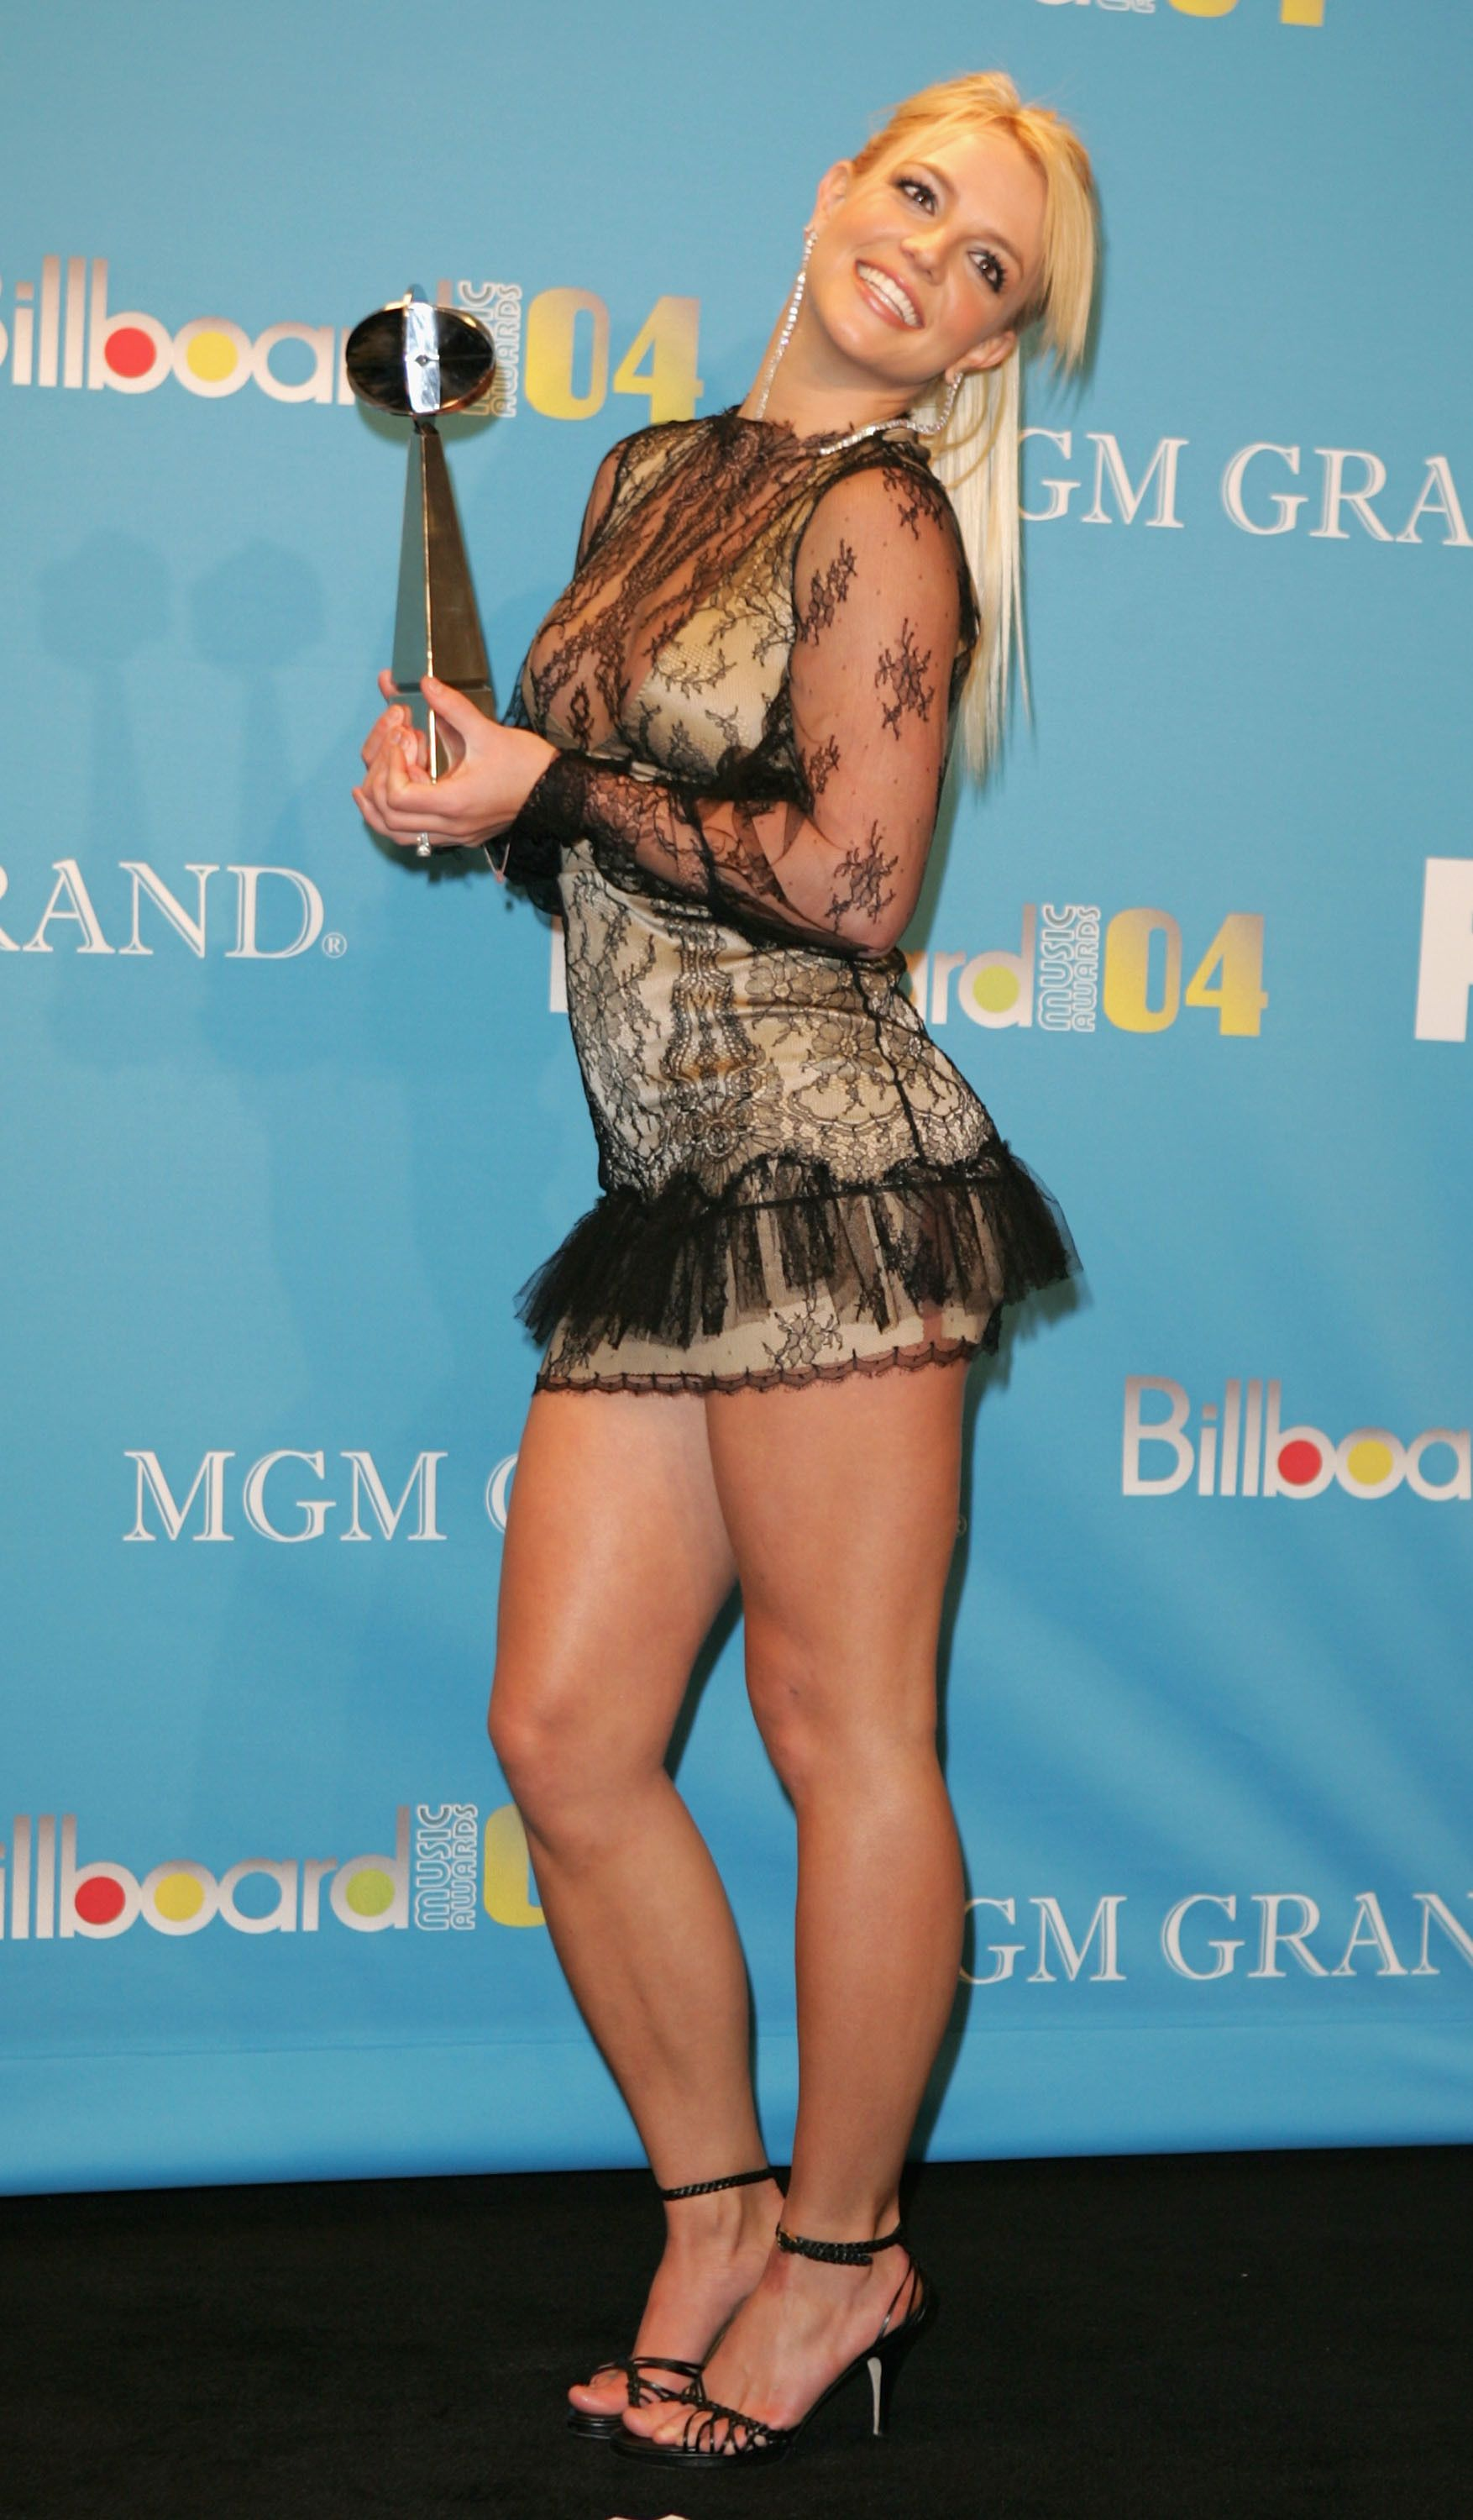 That britney spears legs very talented